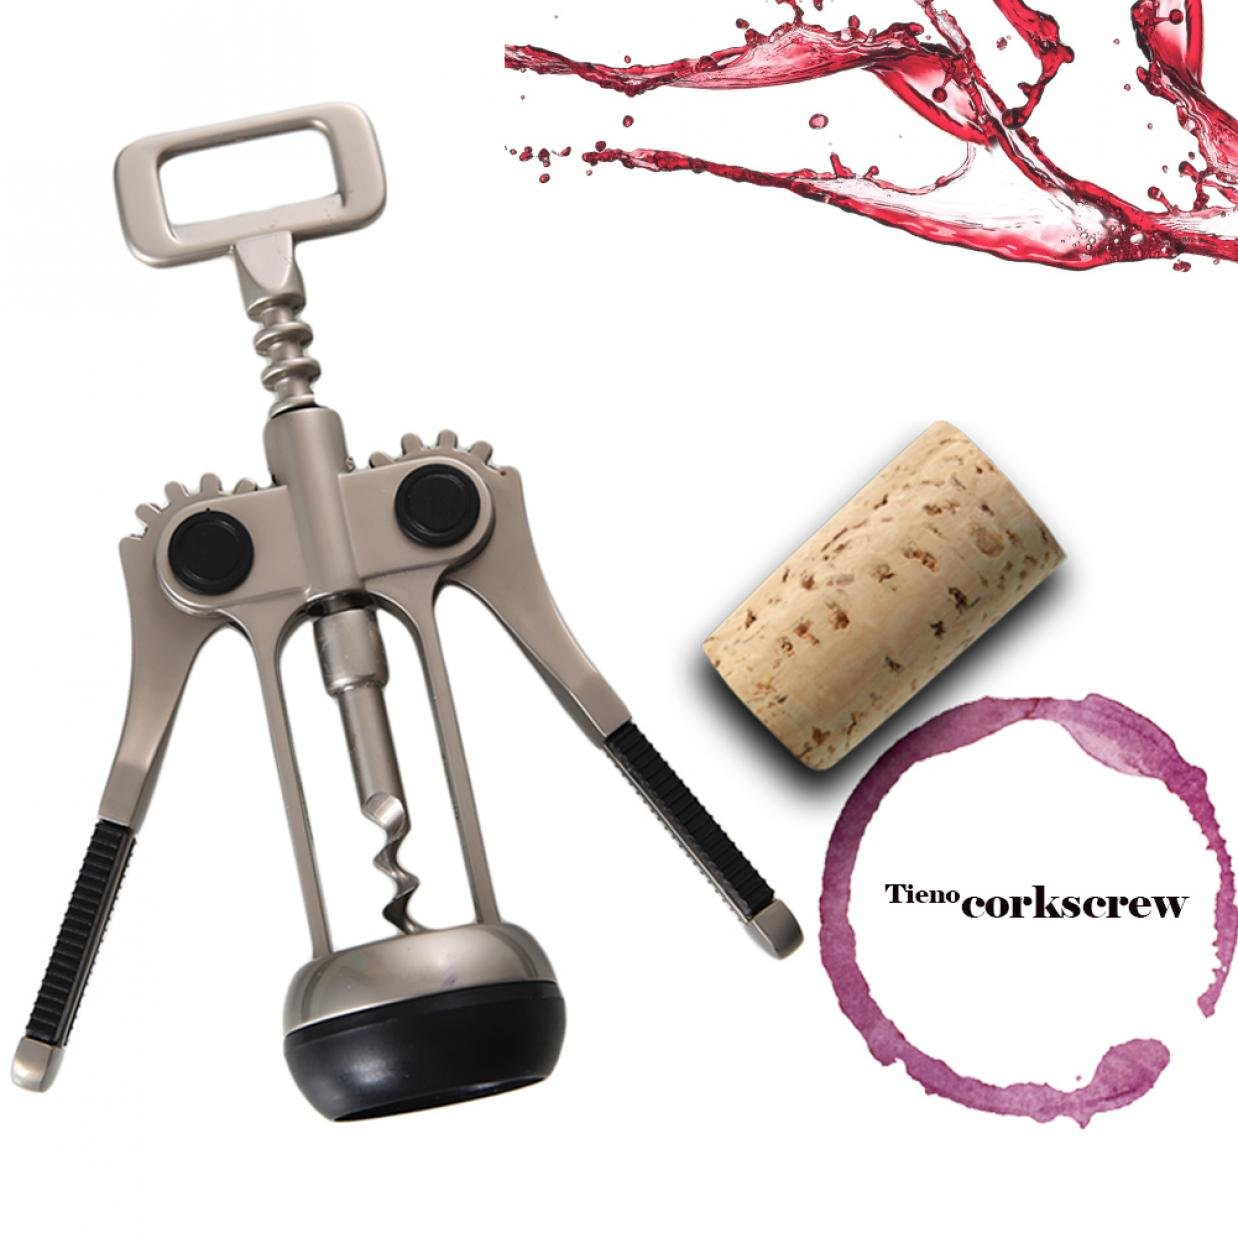 TIENO Premium Wing Corkscrews Wine Opener Durable 2 Functions Red Wine Bottle Opener Heavy-dust, Dignified Appearance